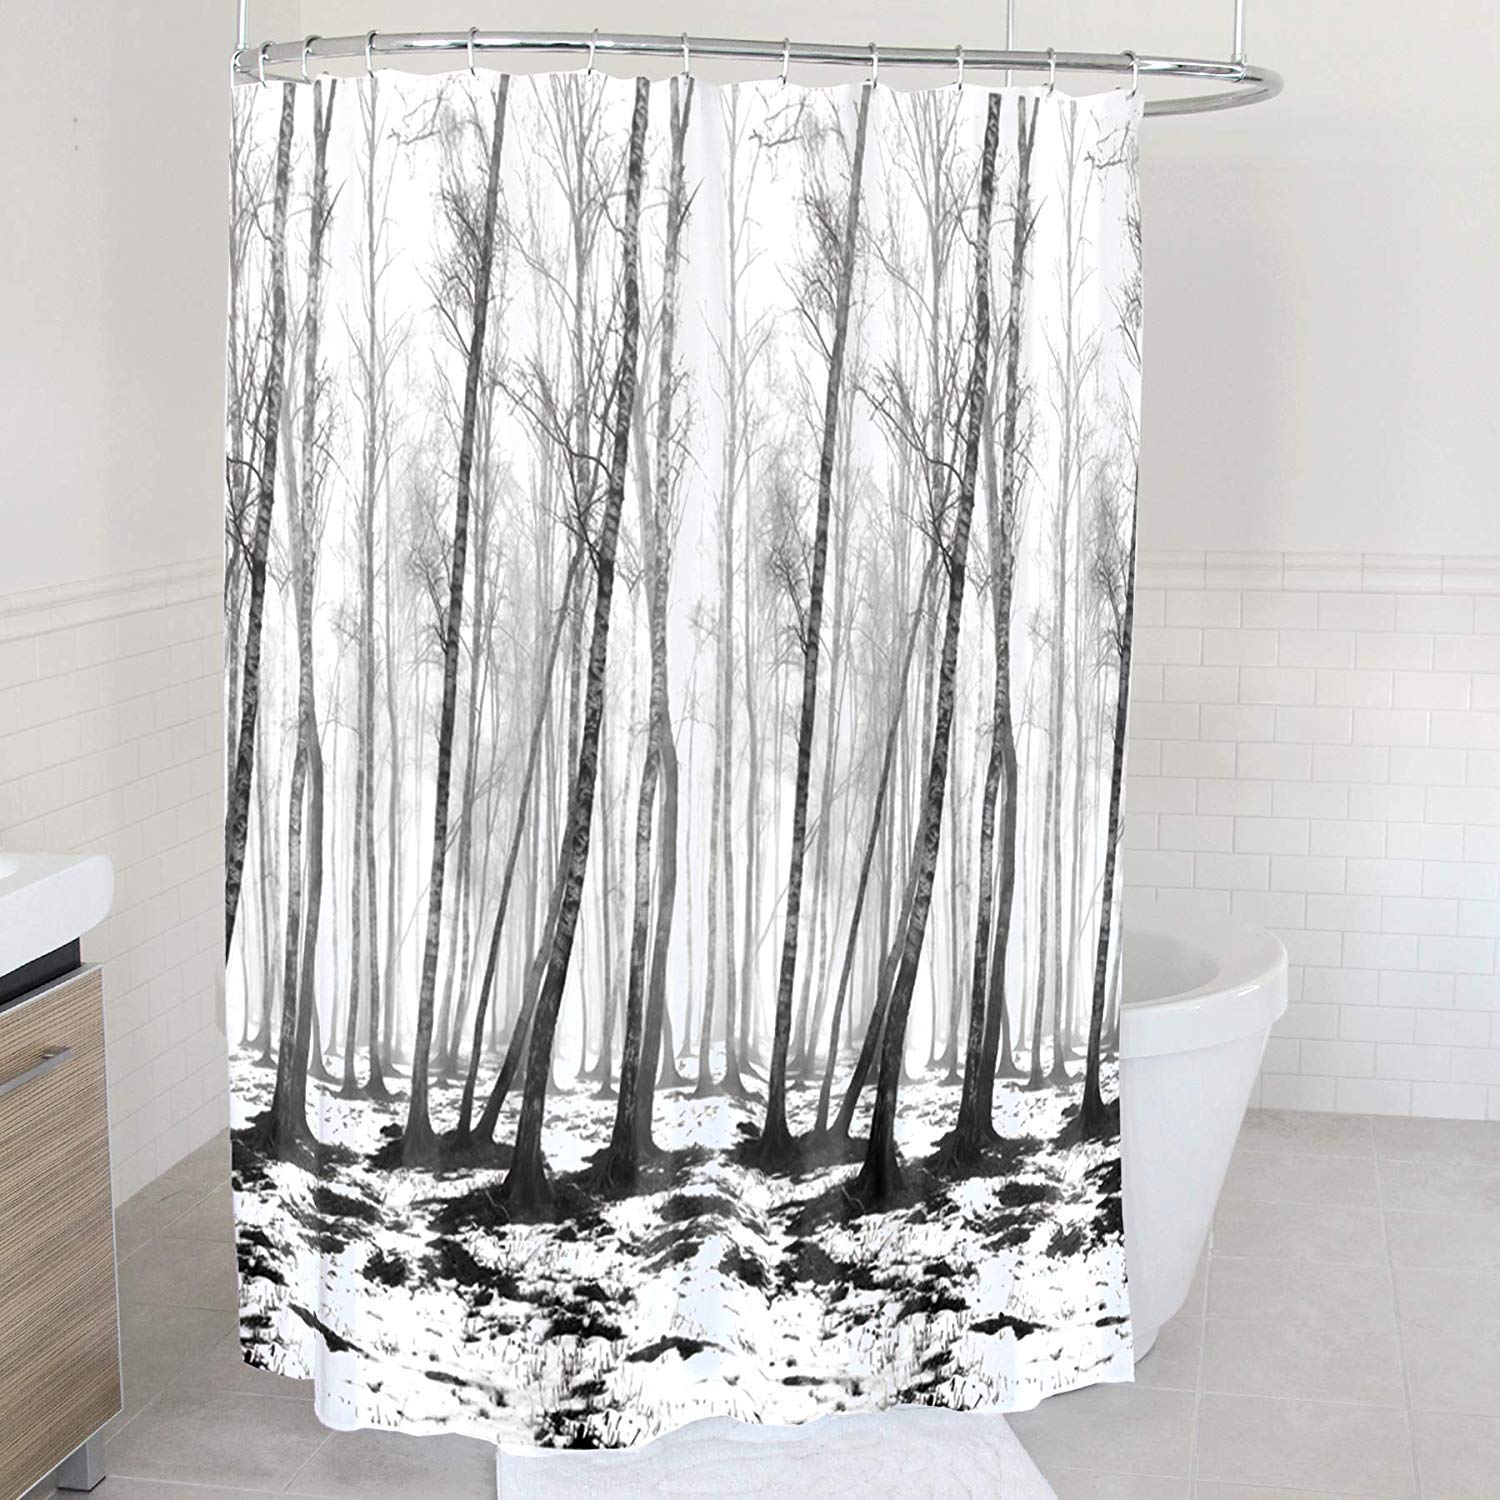 Splash Home Tree Polyester Fabric Shower Curtain 70 x 72 Inches Chocolate 70 x 72 Inches